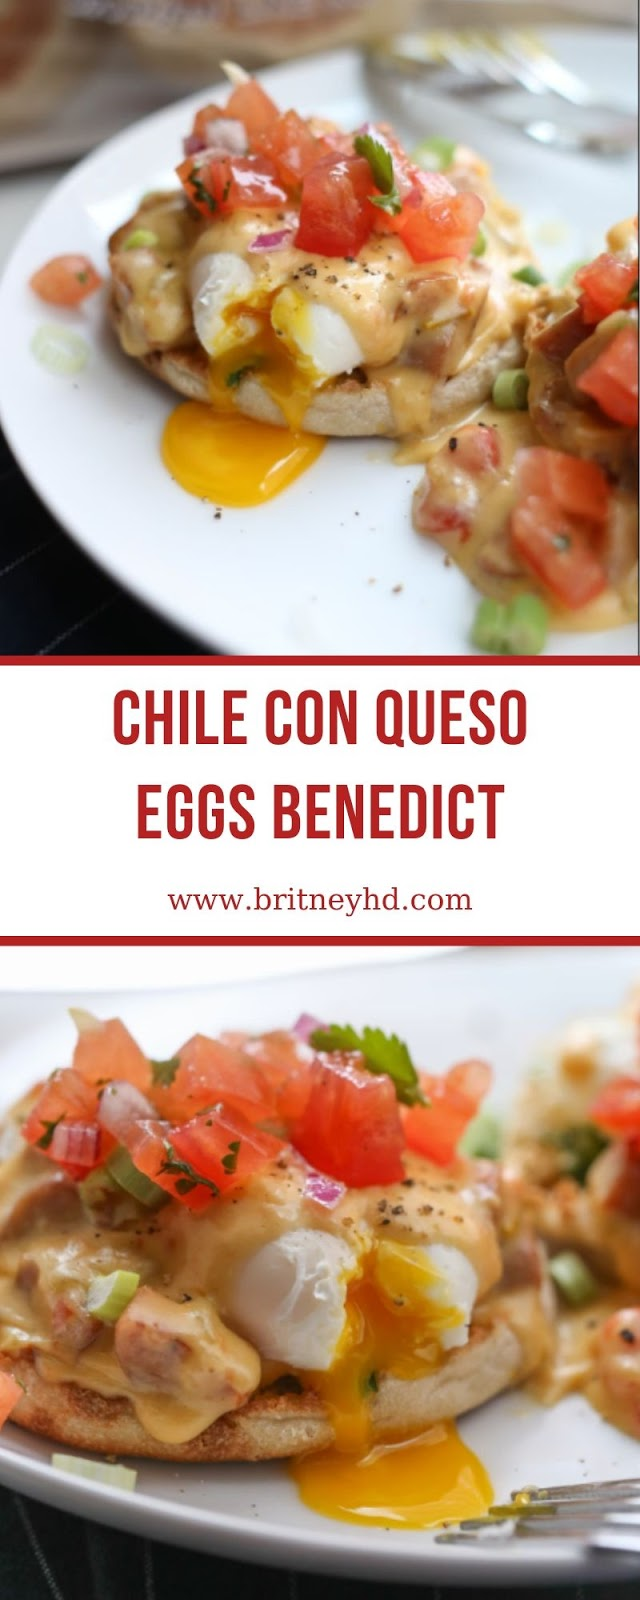 CHILE CON QUESO EGGS BENEDICT